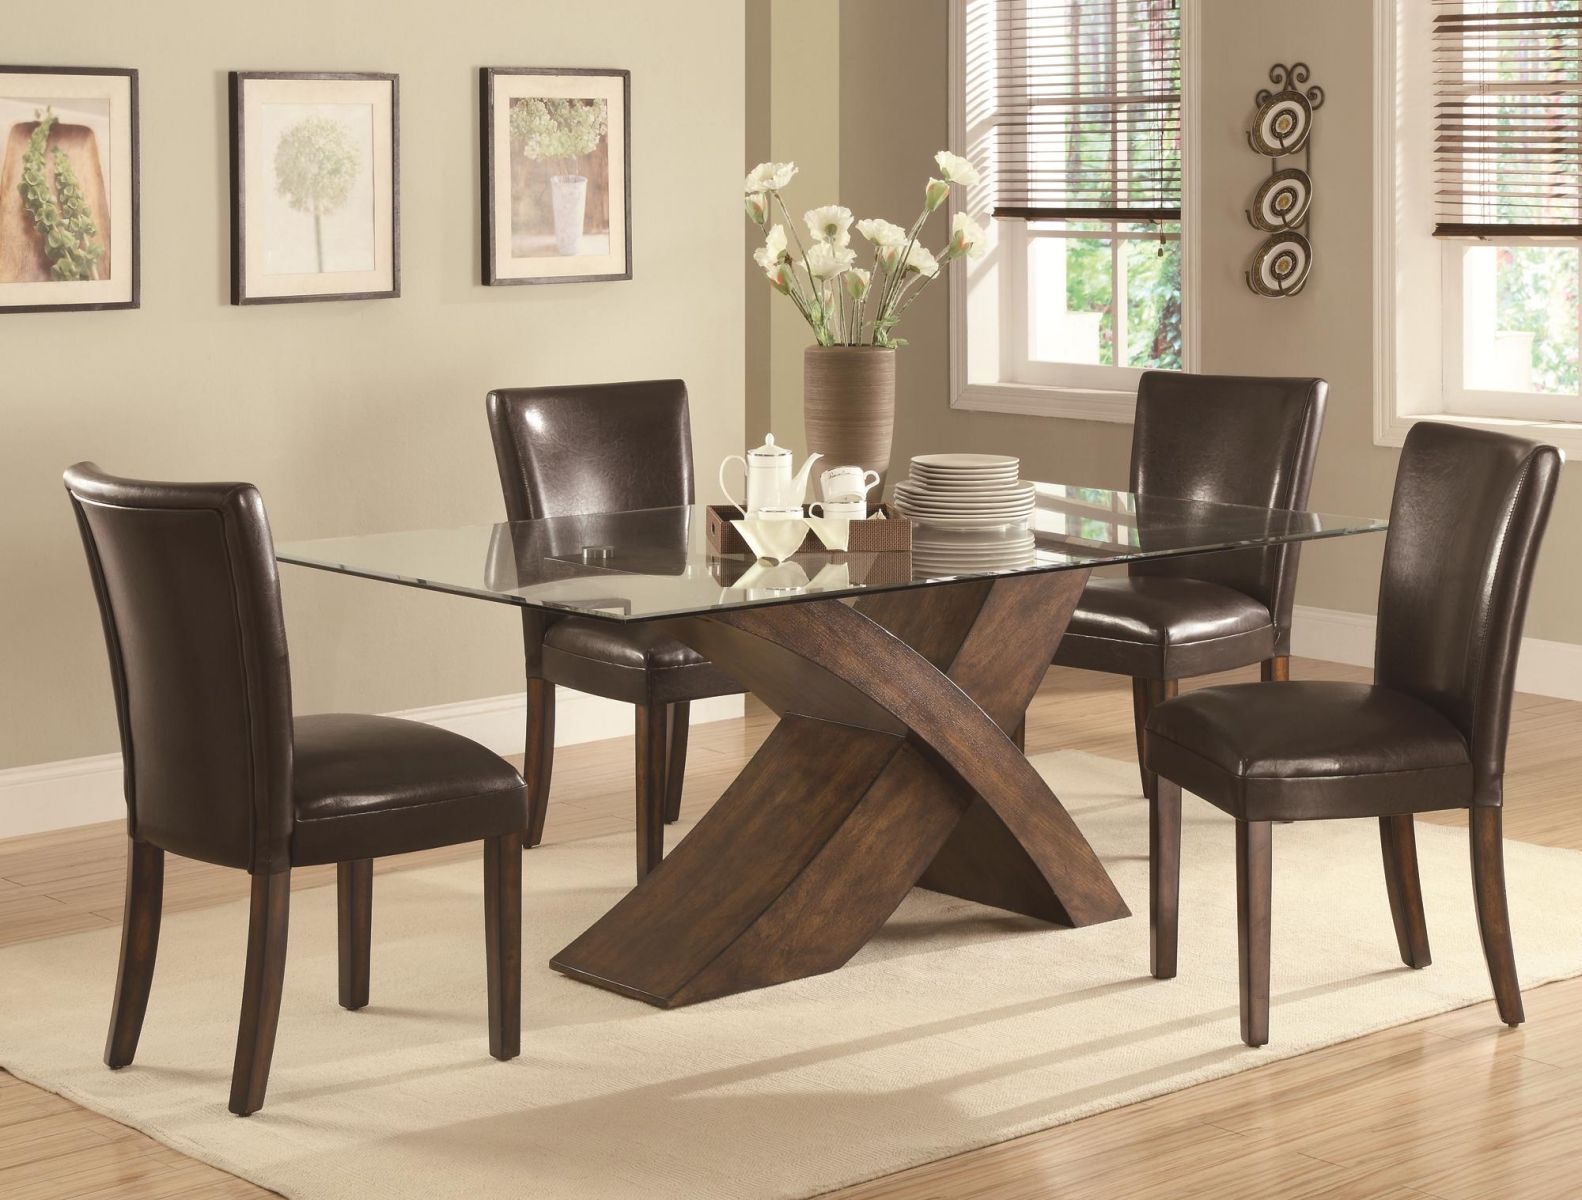 Amazing Unique Dinette Long Island New York   Coaster Dining Room Set Price Upon  Request Call ( Awesome Ideas